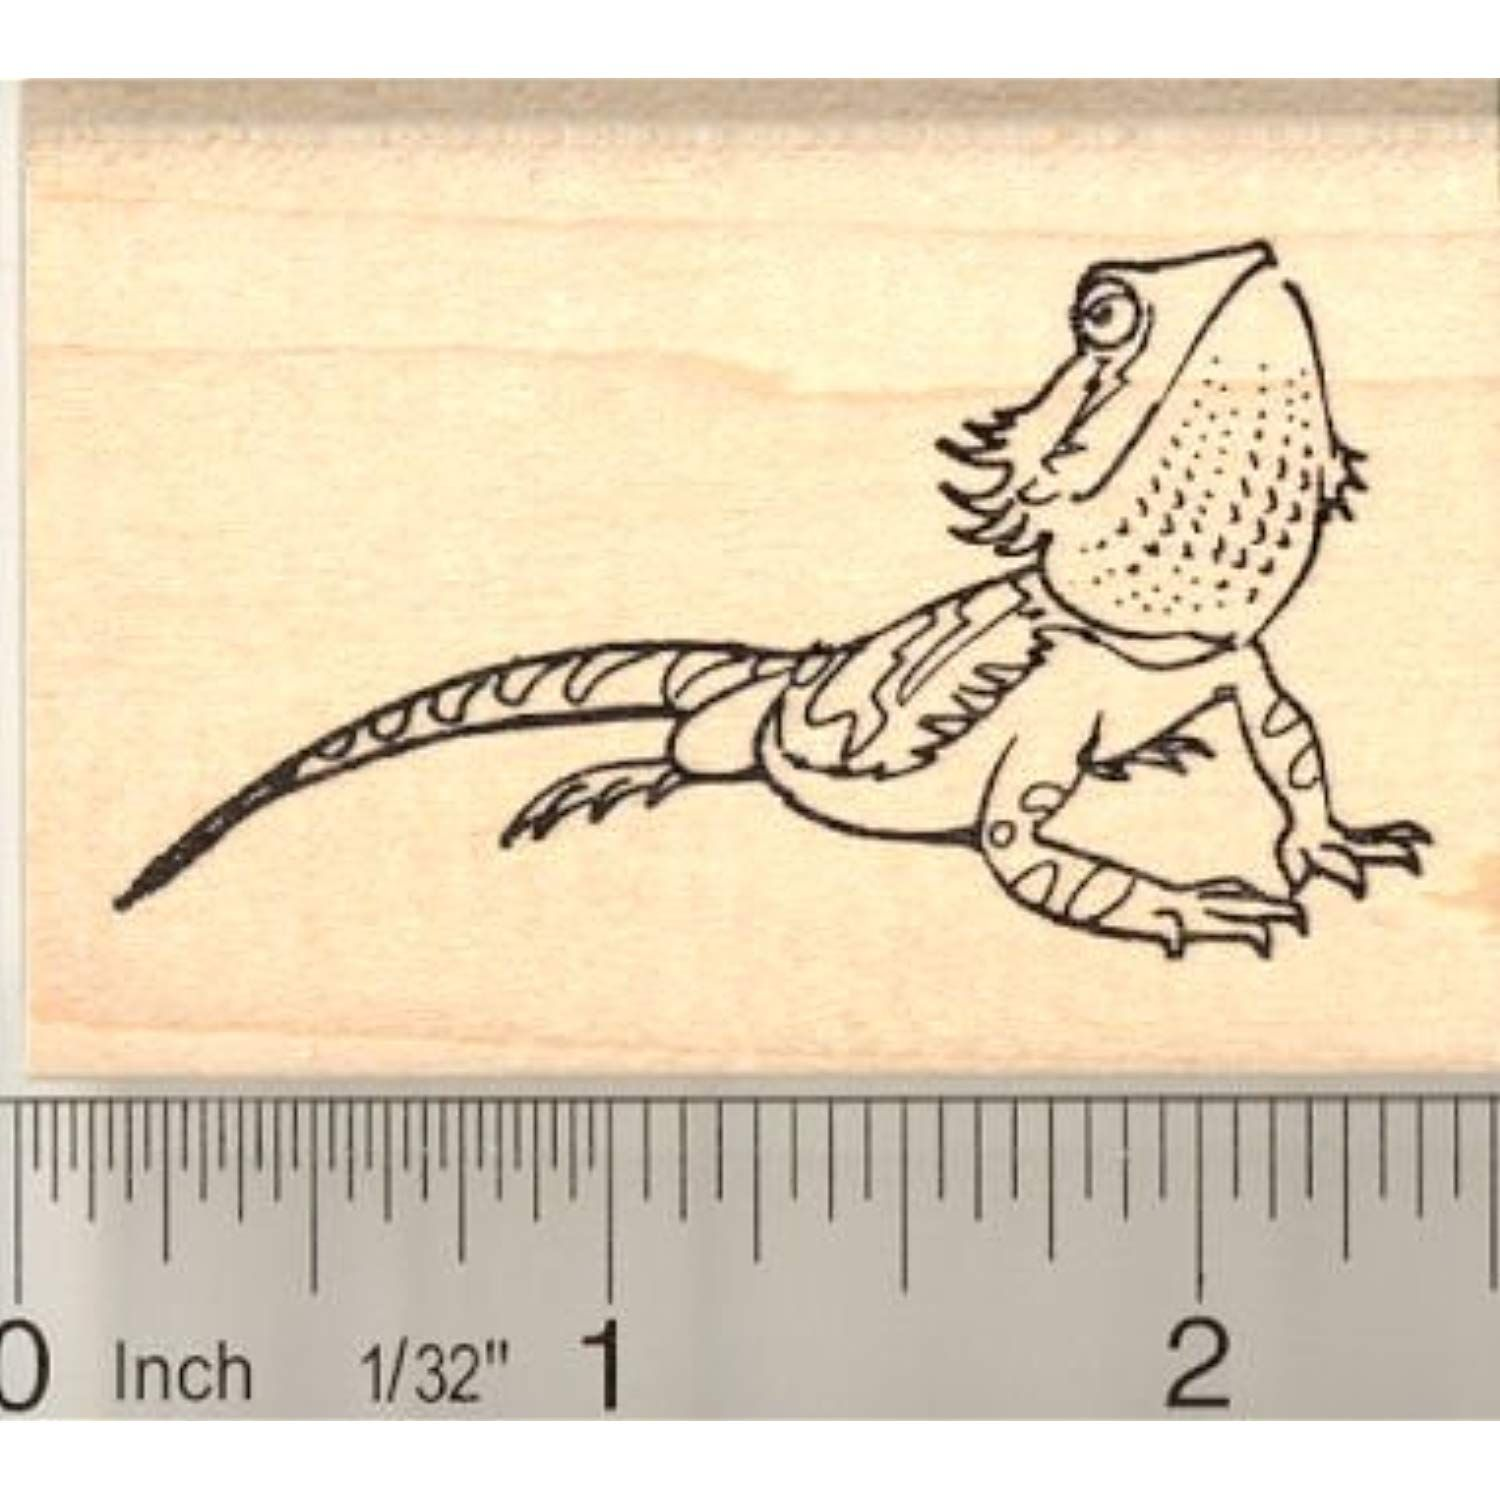 Bearded Dragon Rubber Stamp Gt Gt Gt Click Image For More